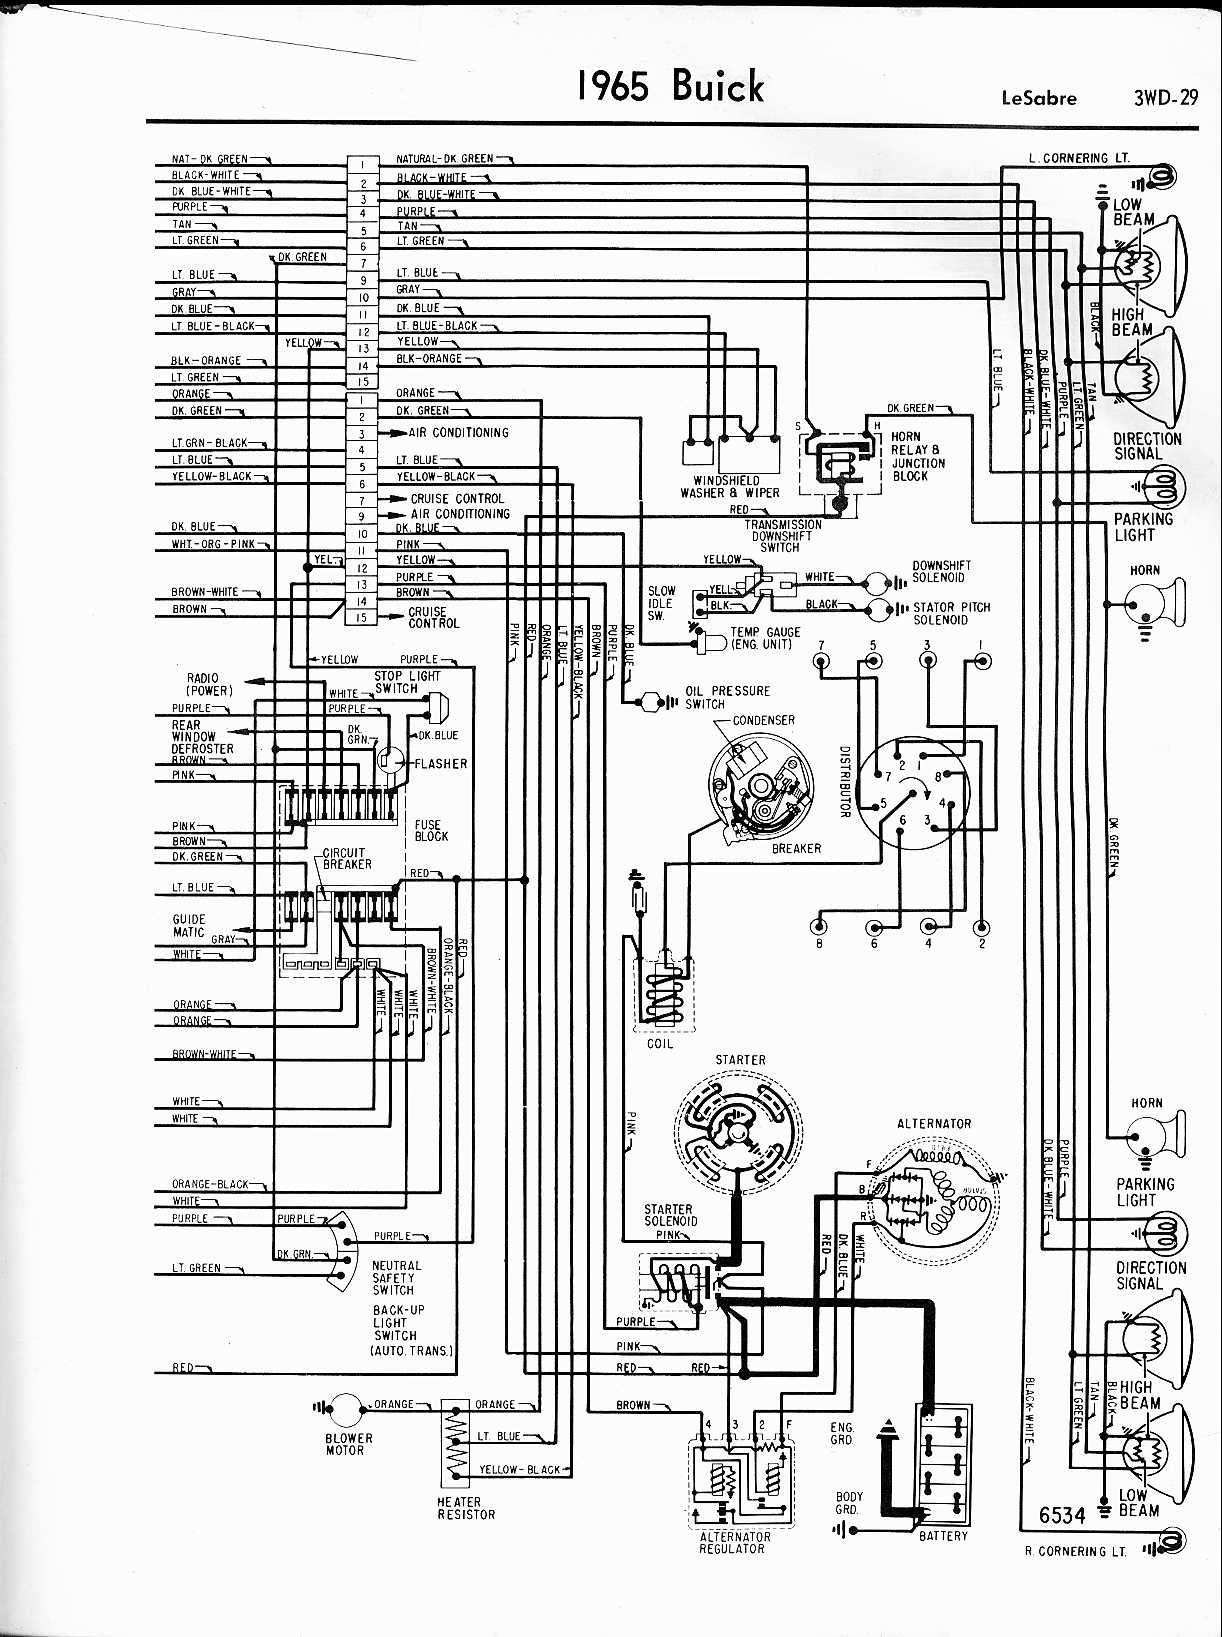 3f12 Wiring Diagram For Buick Park Ave